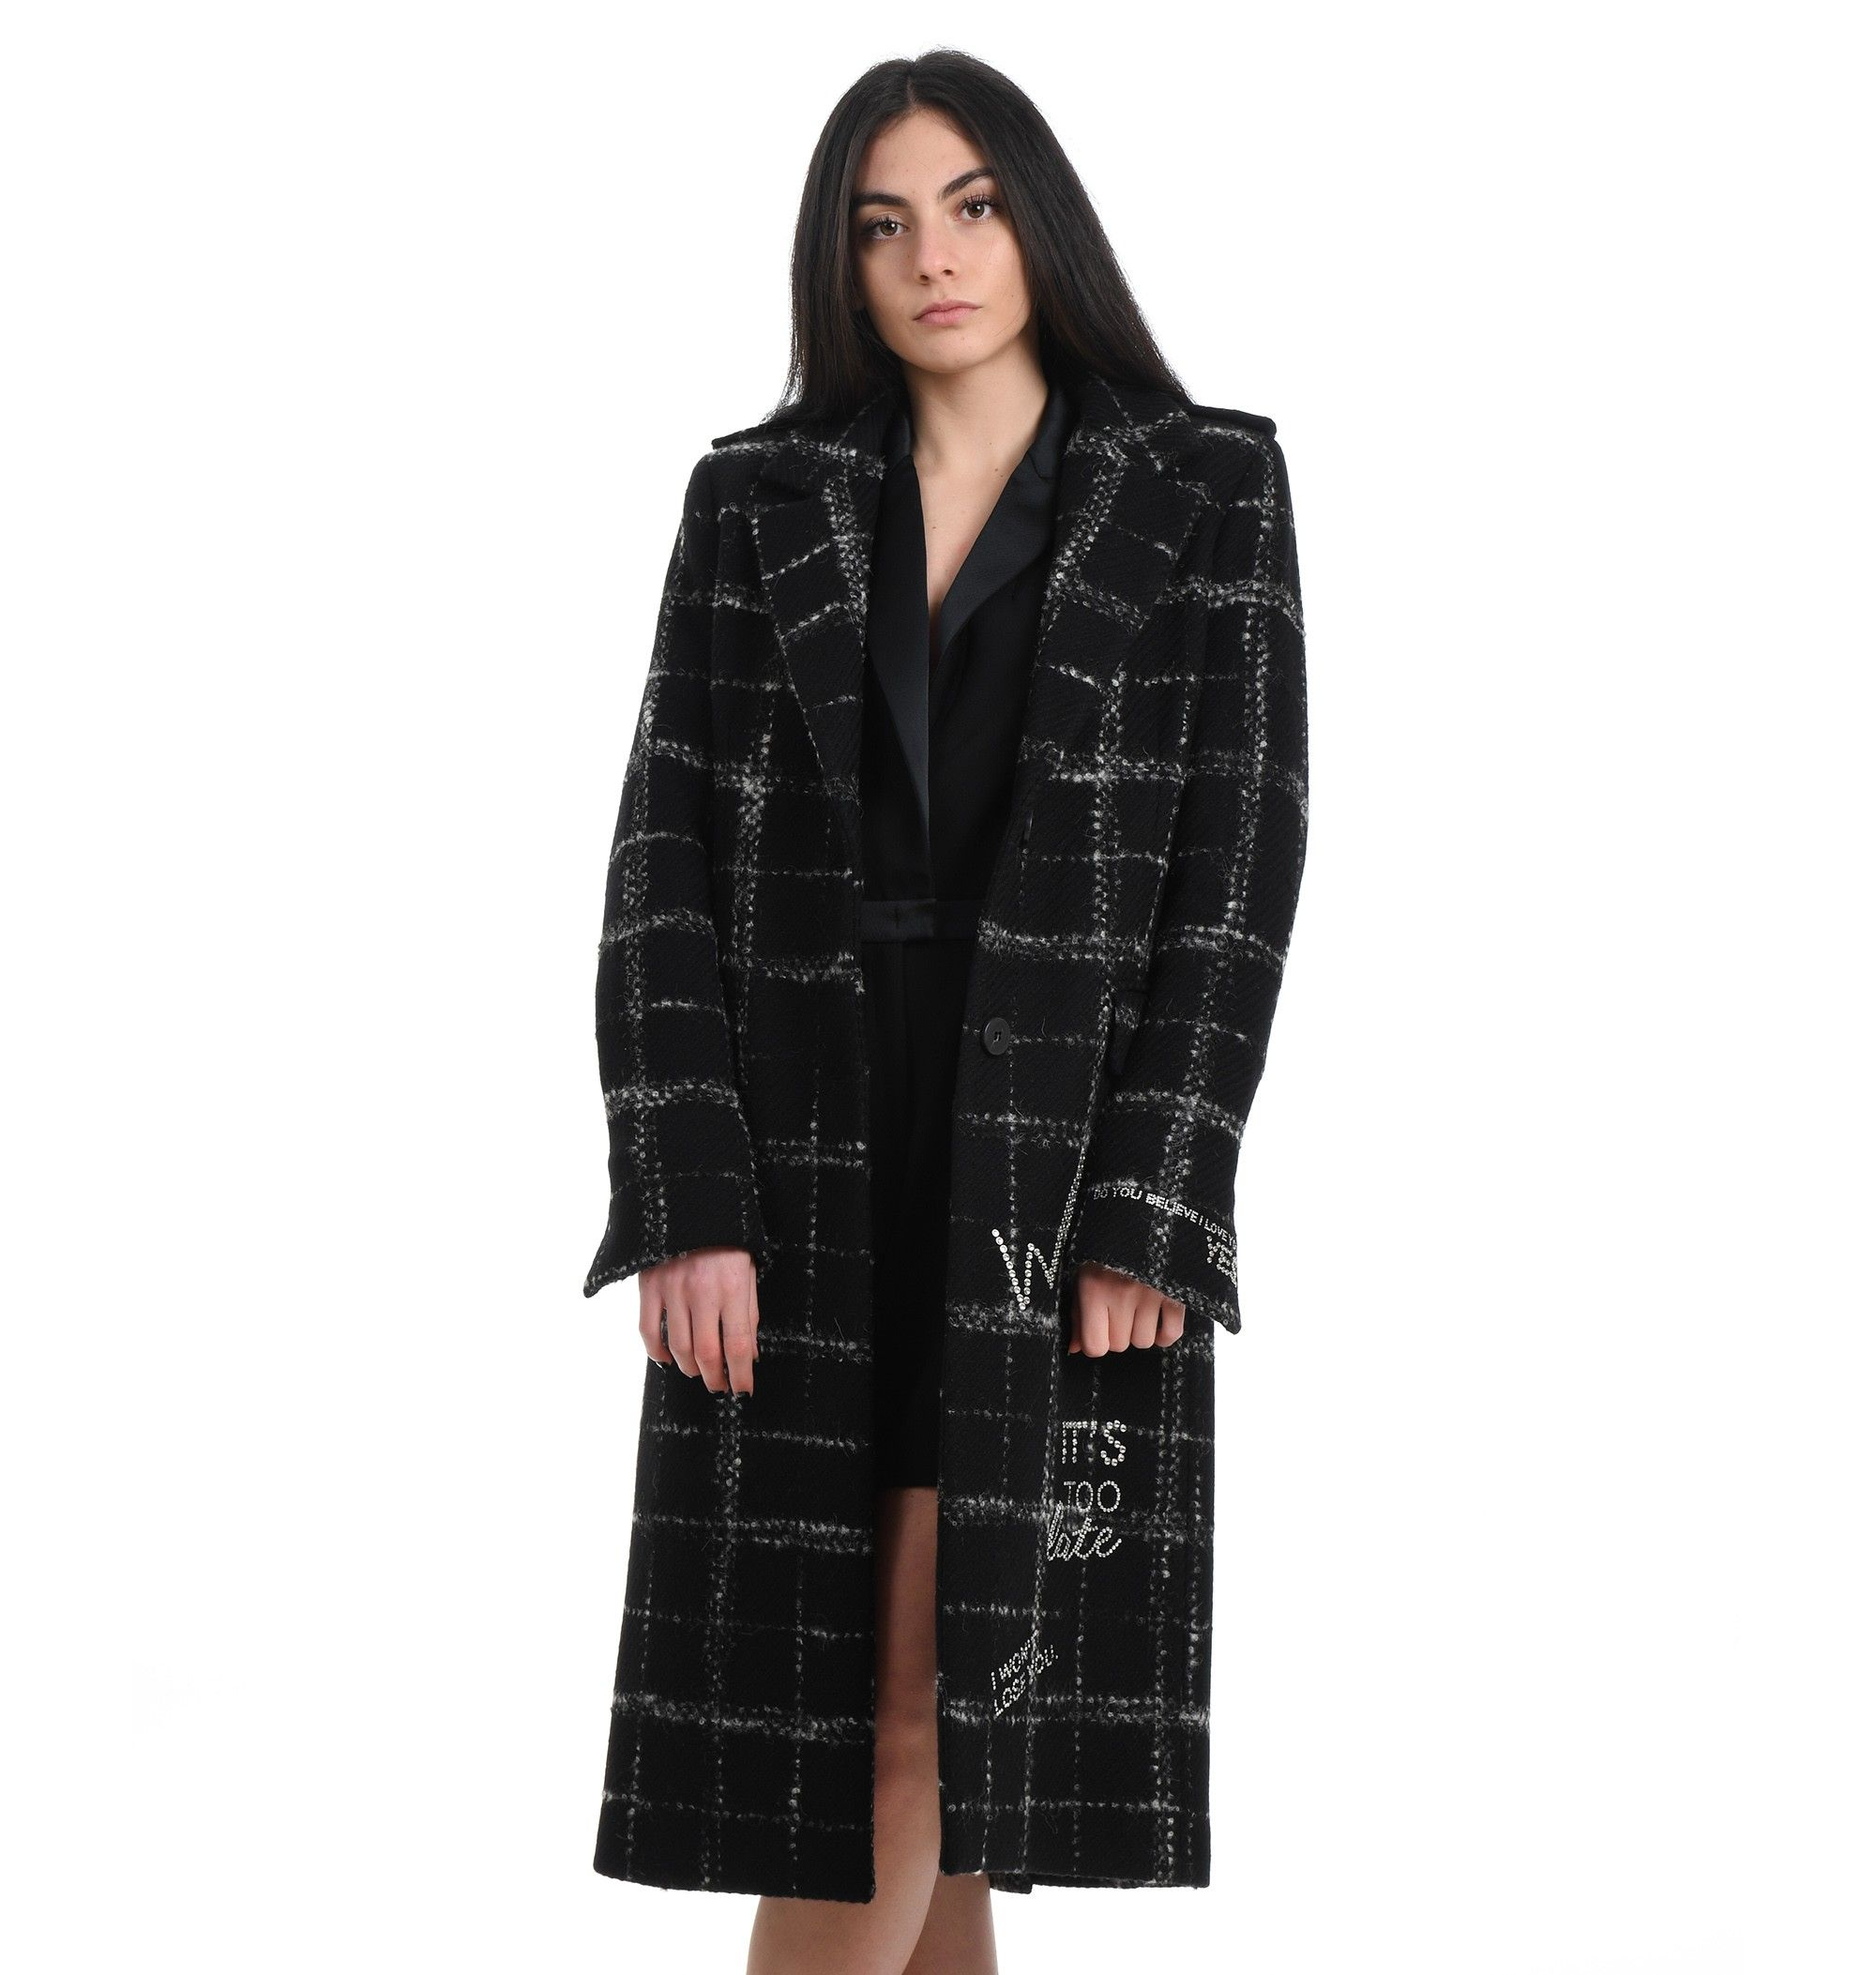 Pinko PINKO WOMEN'S BLACK OTHER MATERIALS COAT